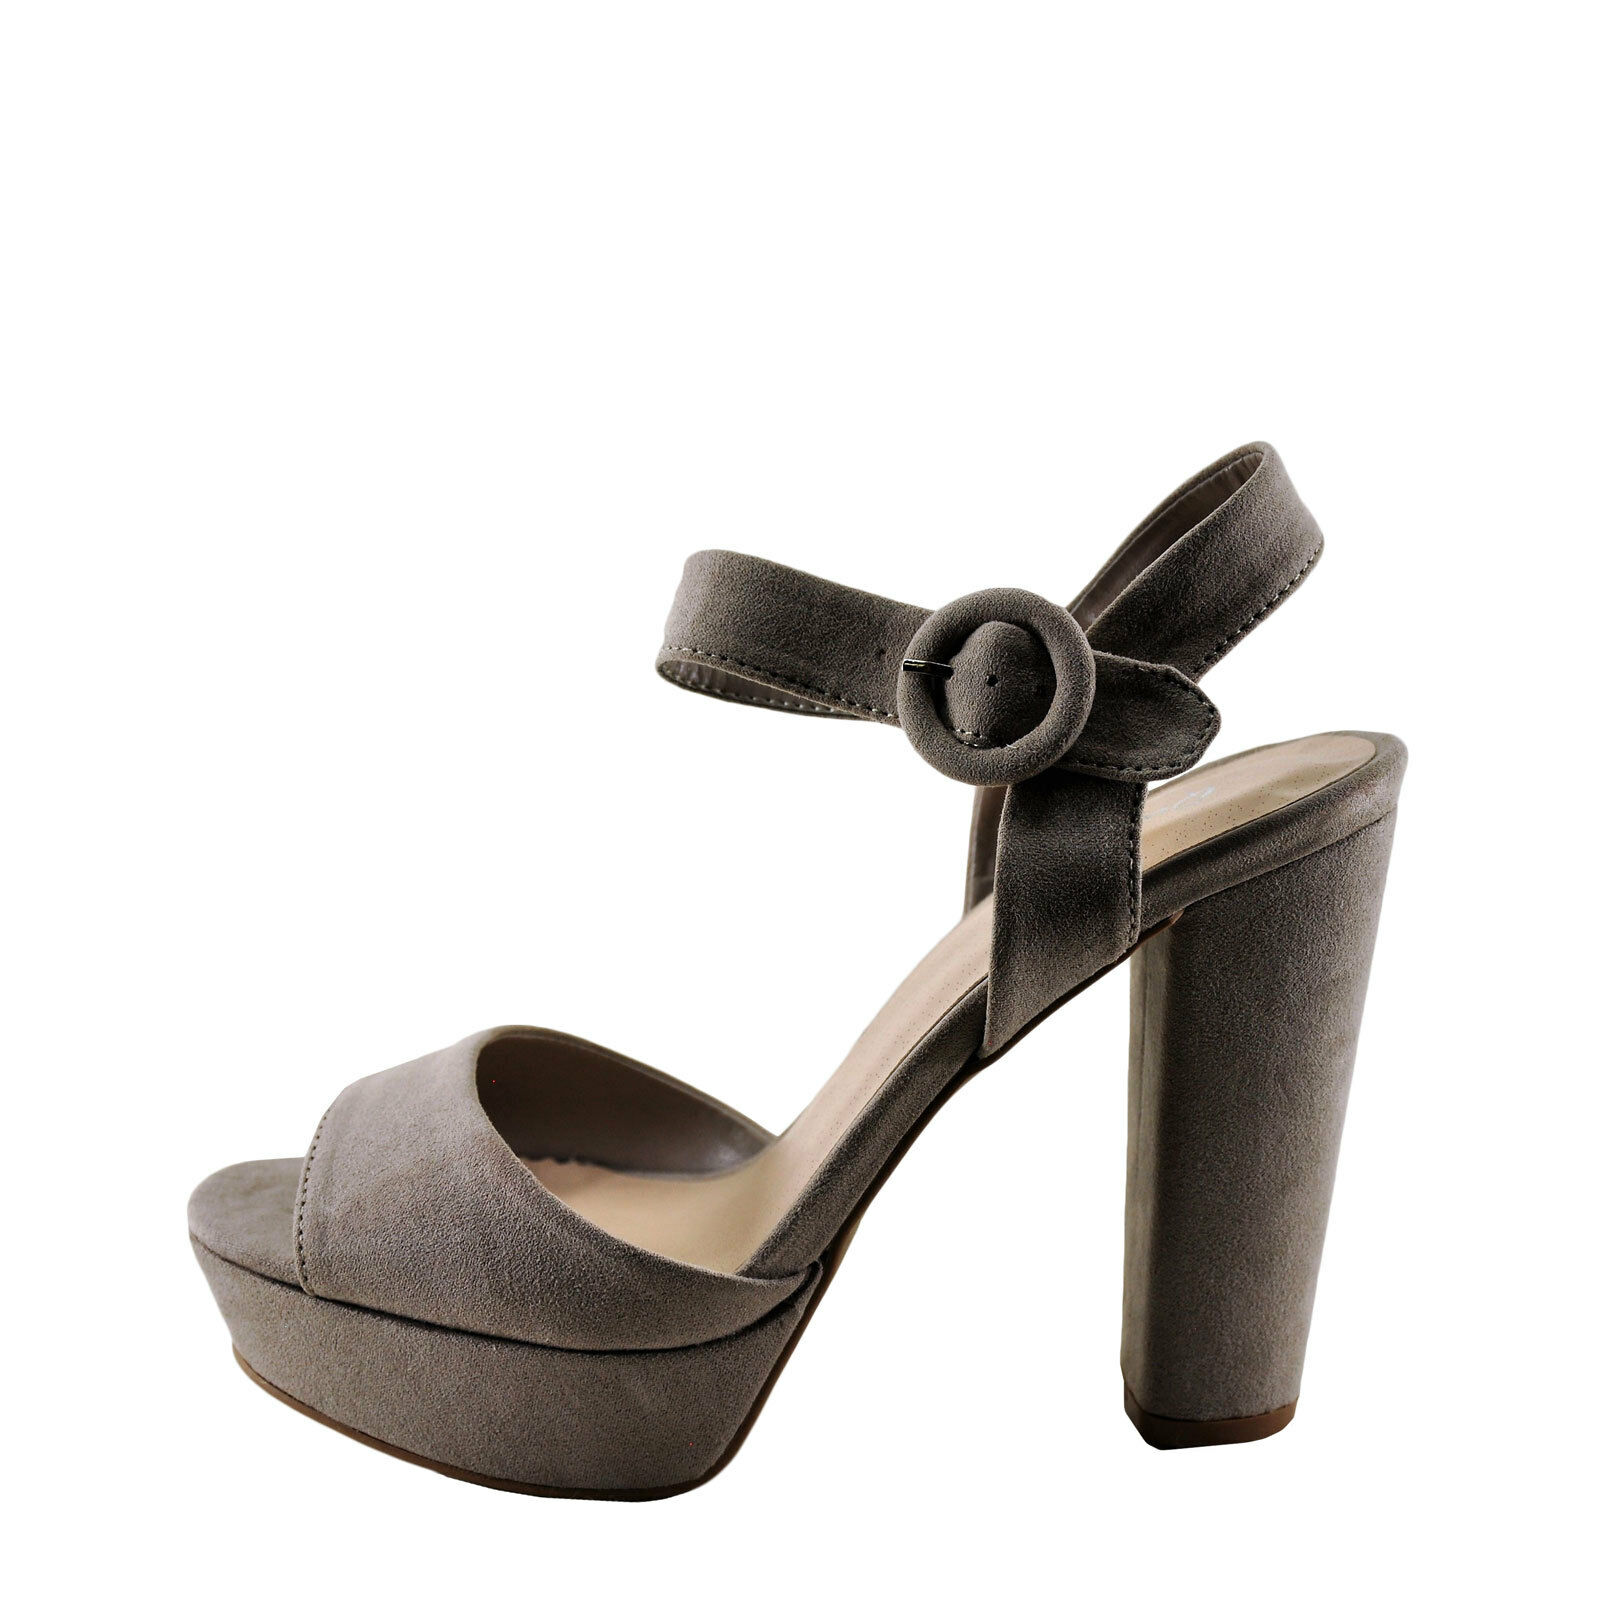 Qupid Iconic 01 Taupe Women's Faux Suede Open Toe Chunky Heel